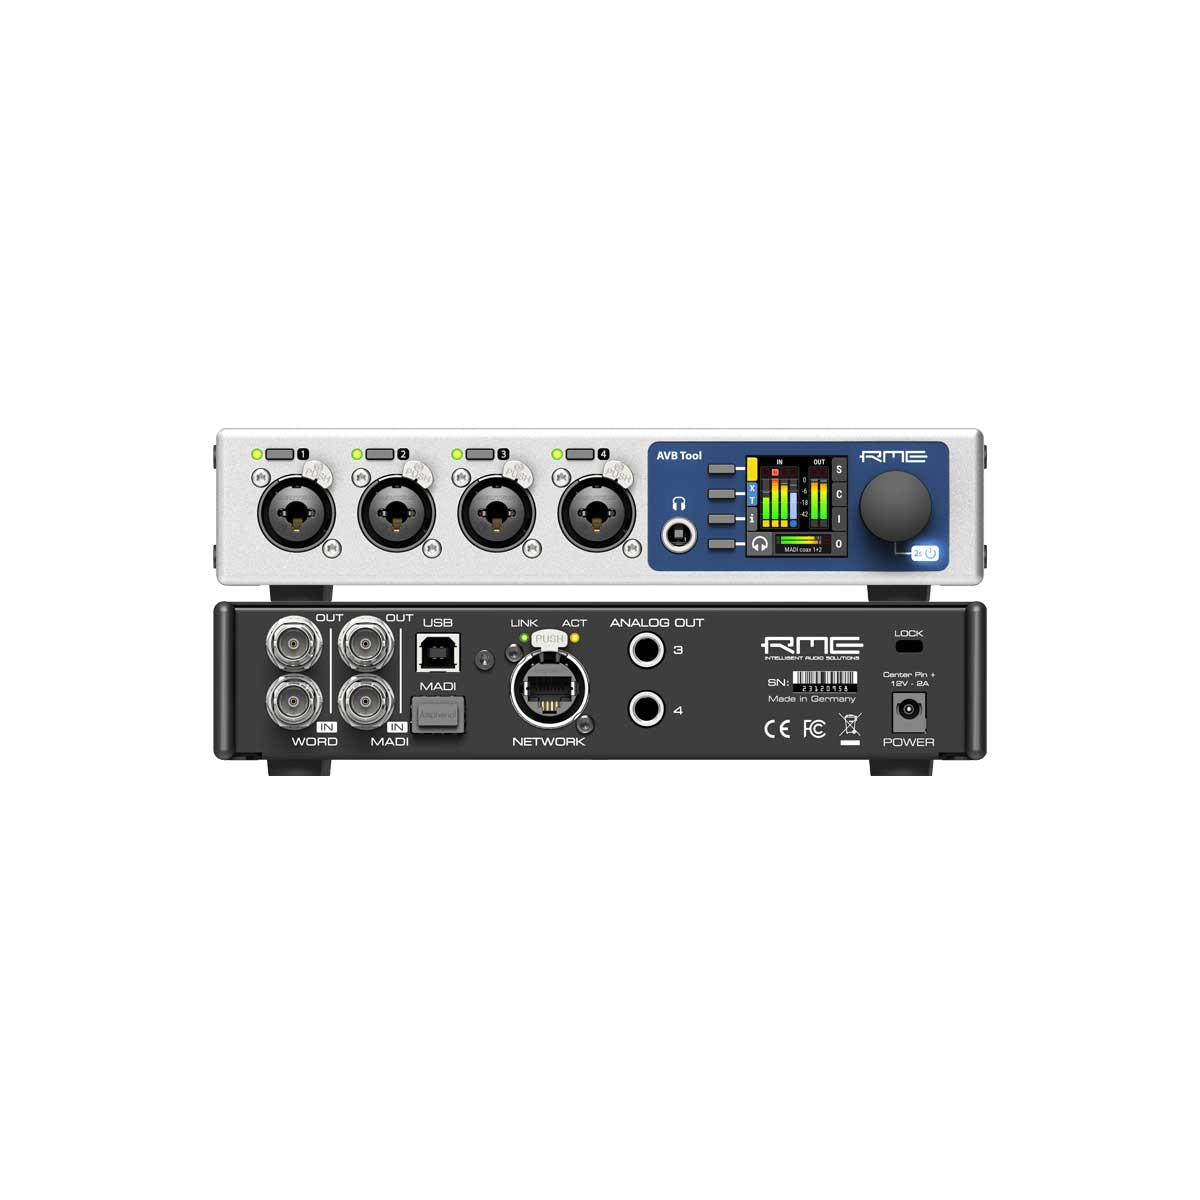 RME AVB Tool Half-rack MADI-AVB interface with outstanding analog connectivity